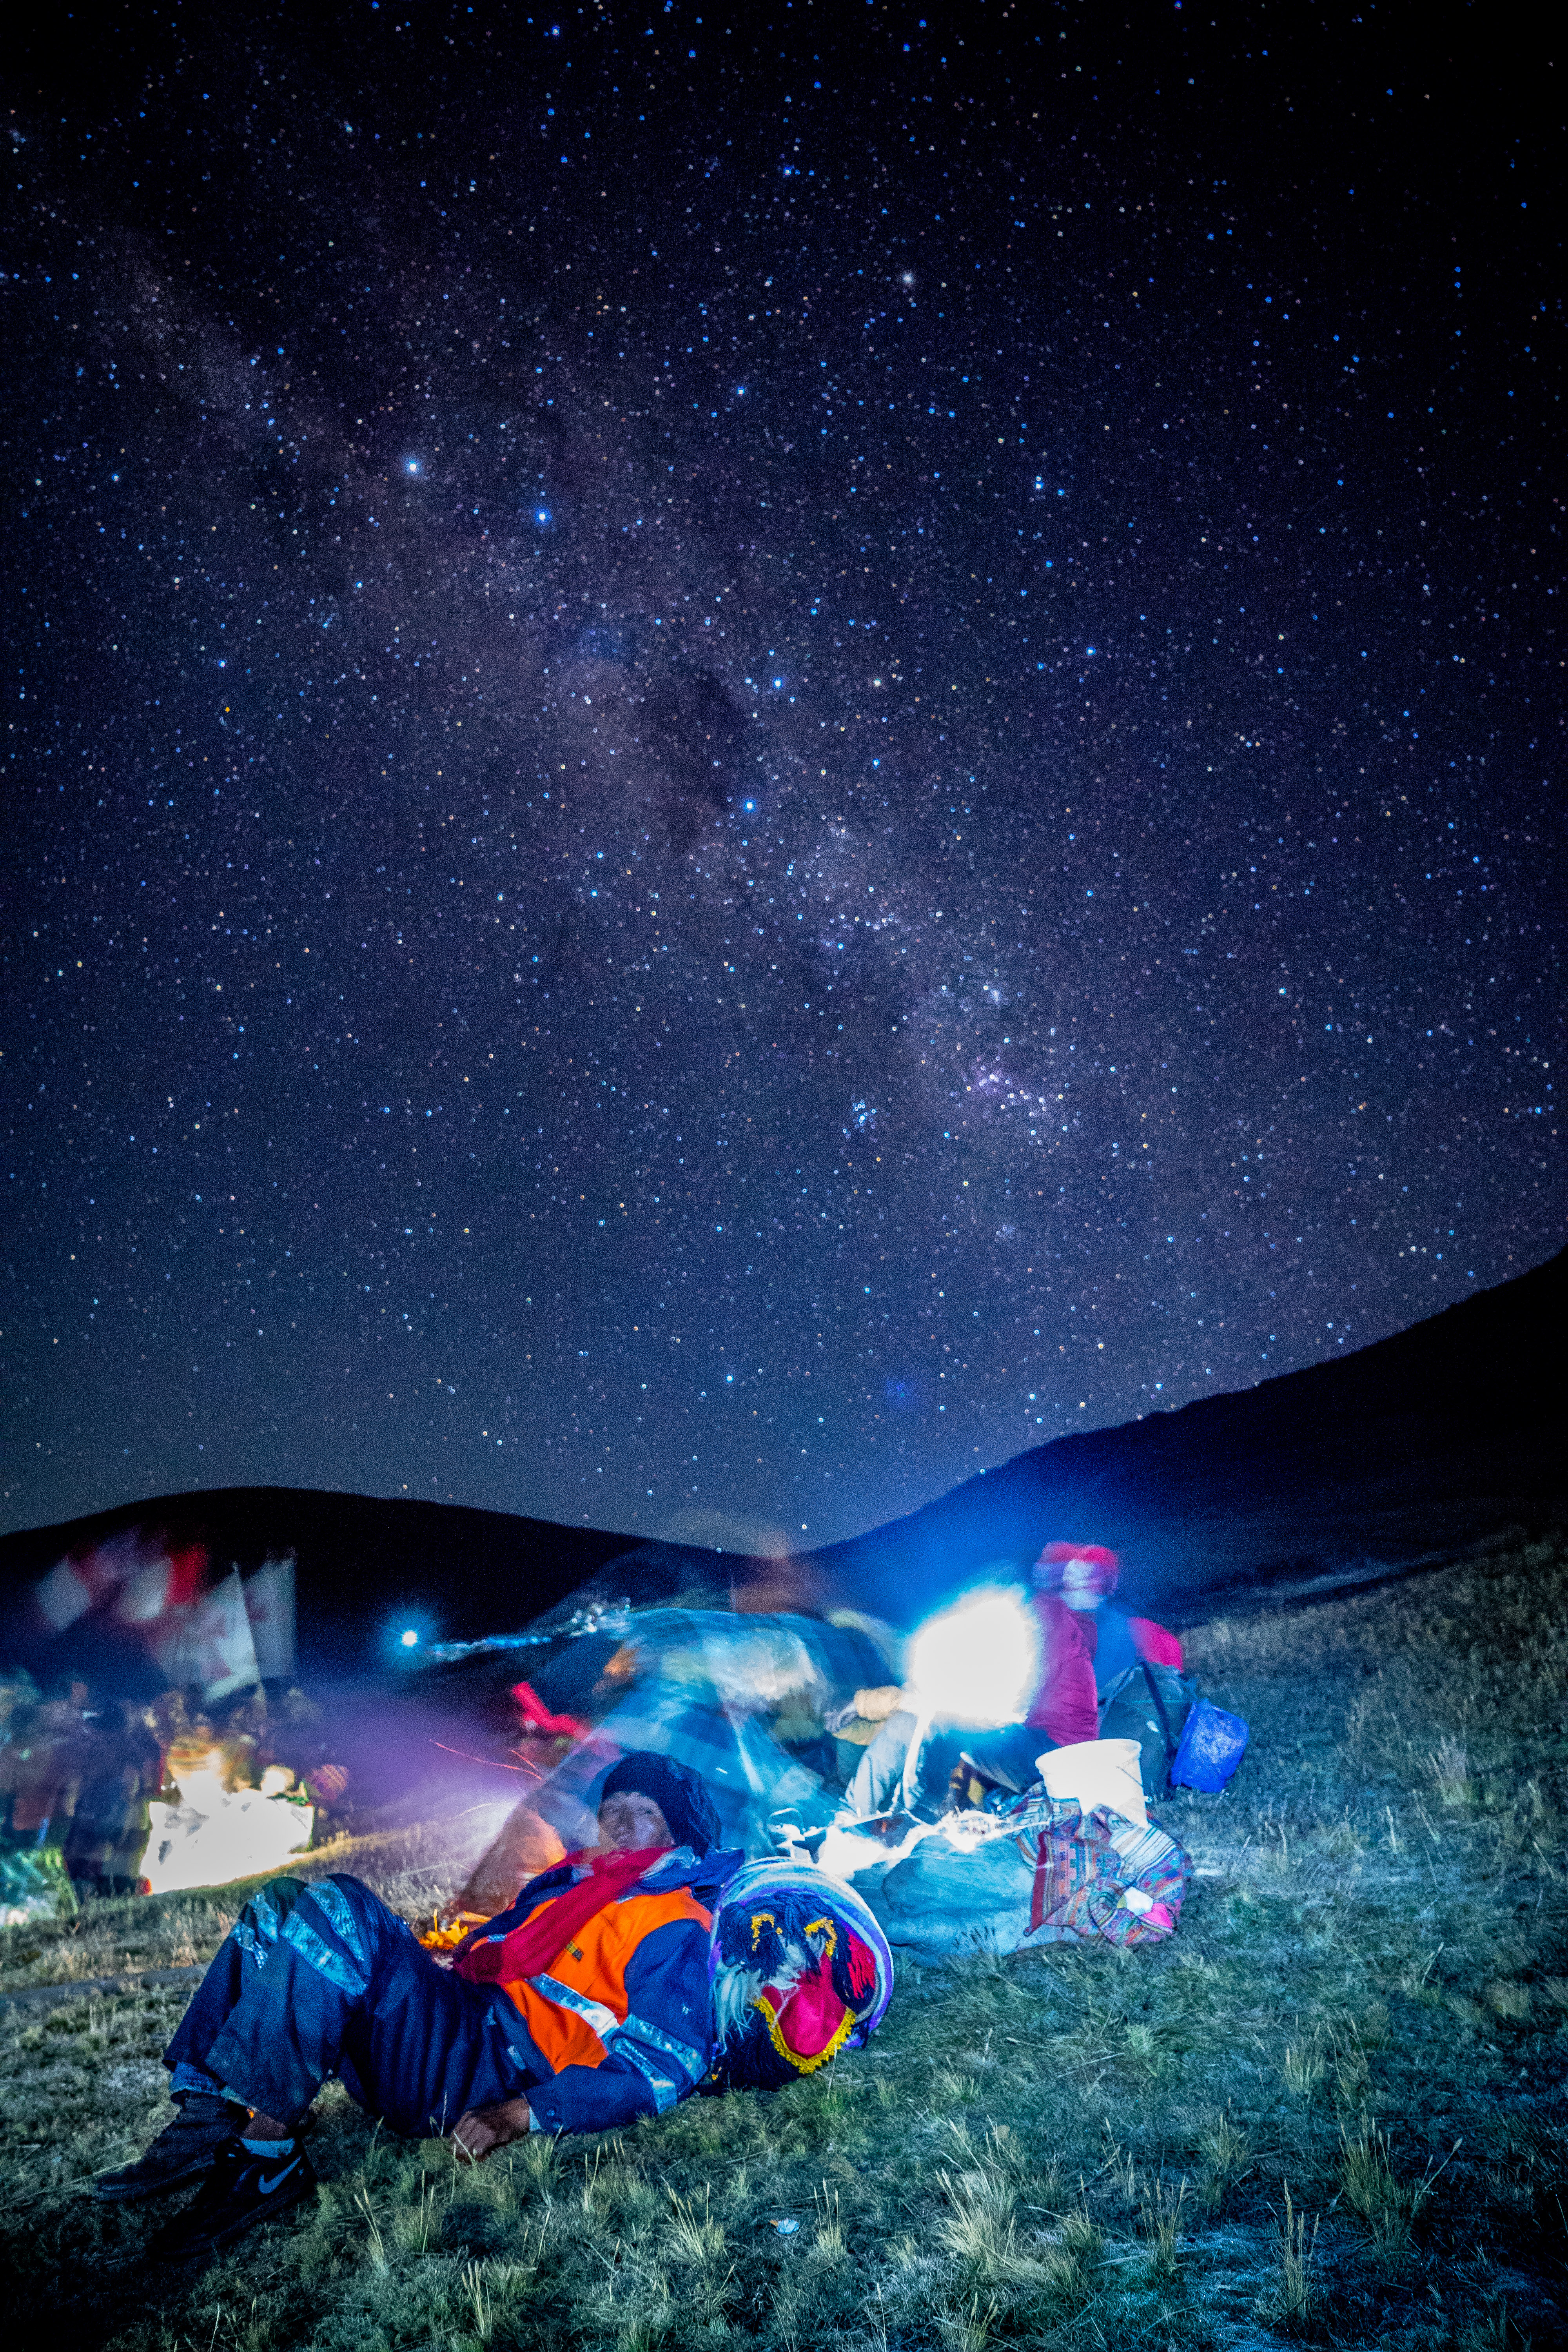 A Pablito Dancer taking a rest while walking under the milky way (Photo by Walter Coraza Morveli)